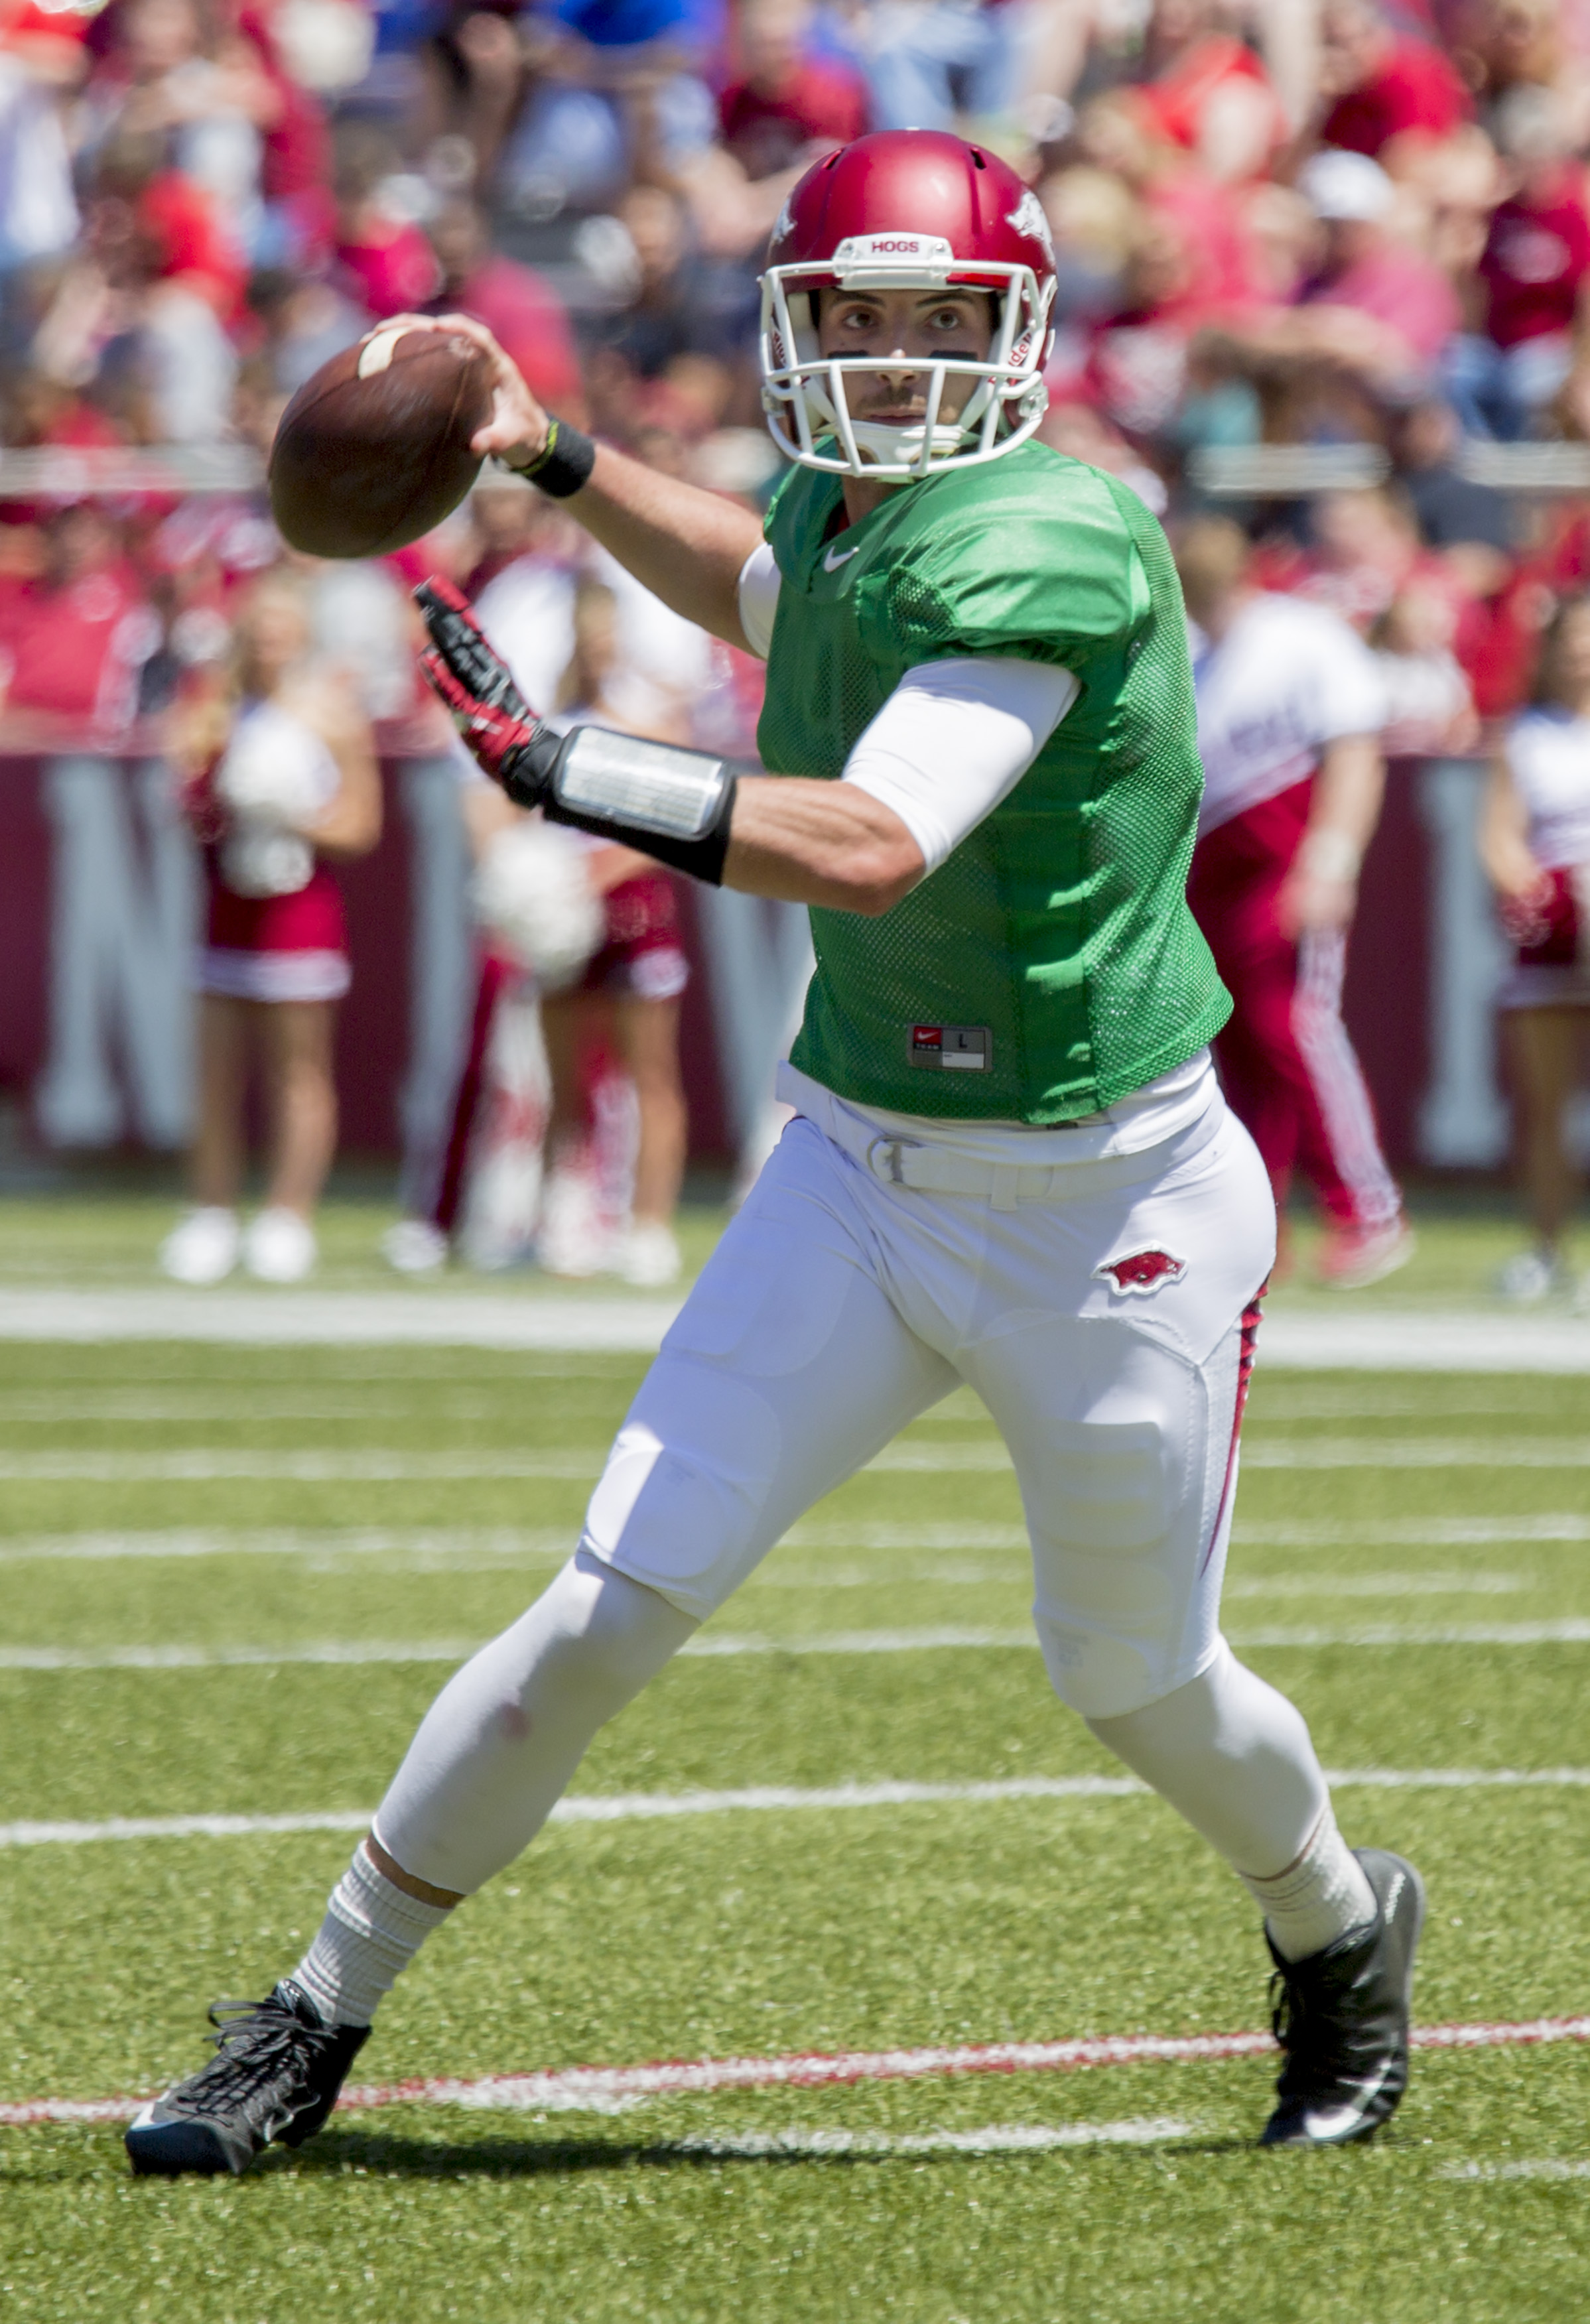 Arkansas quarterback Brandon Allen throws a pass during the Razorback's spring NCAA college football game Saturday, April 25, 2015, in Fayetteville, Ark. (AP Photo/Gareth Patterson)